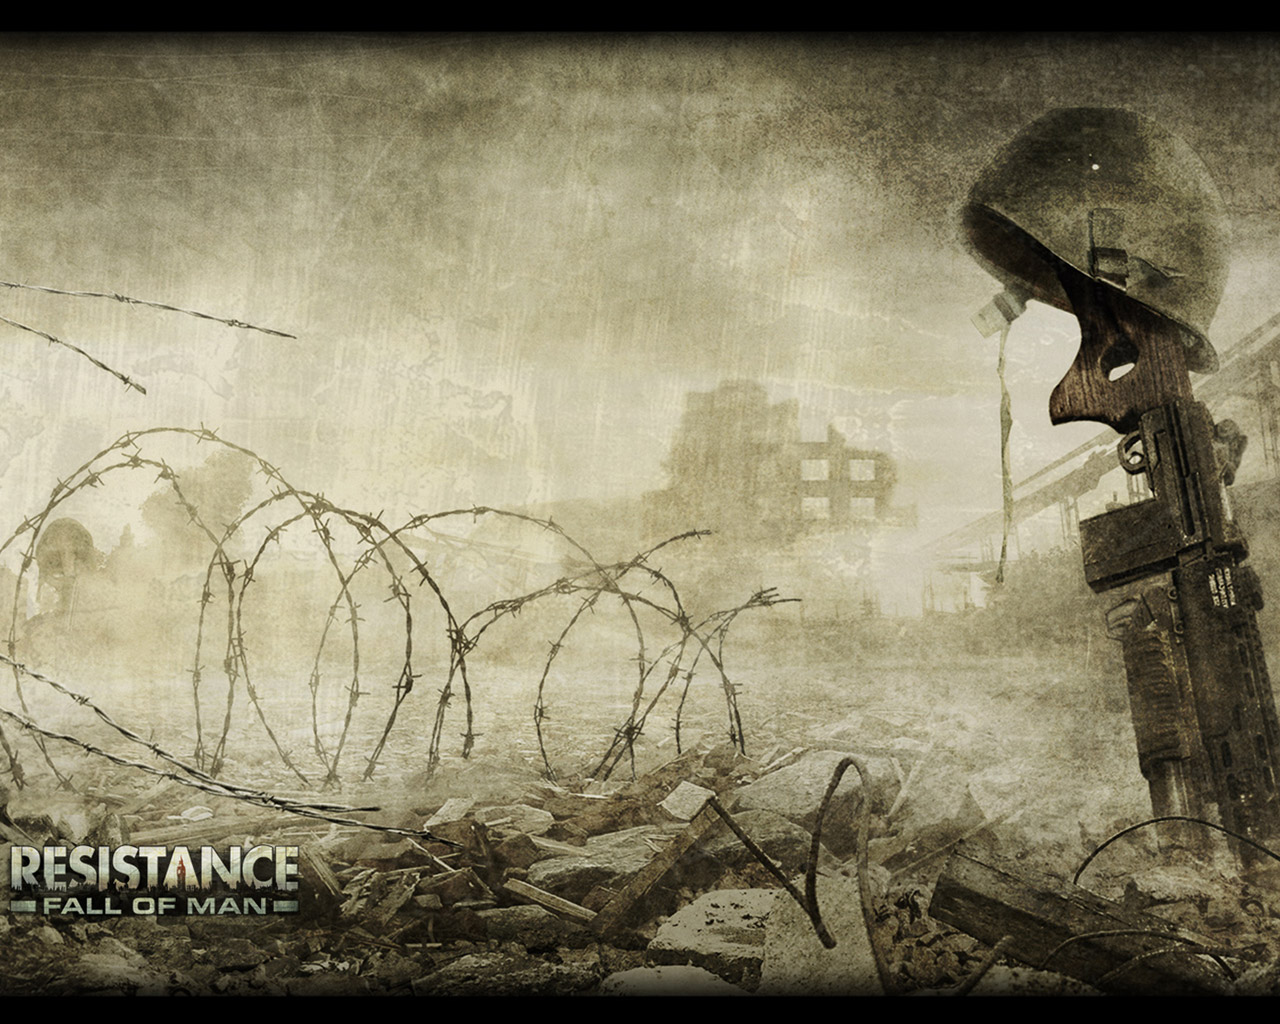 Free Resistance: Fall of Man Wallpaper in 1280x1024